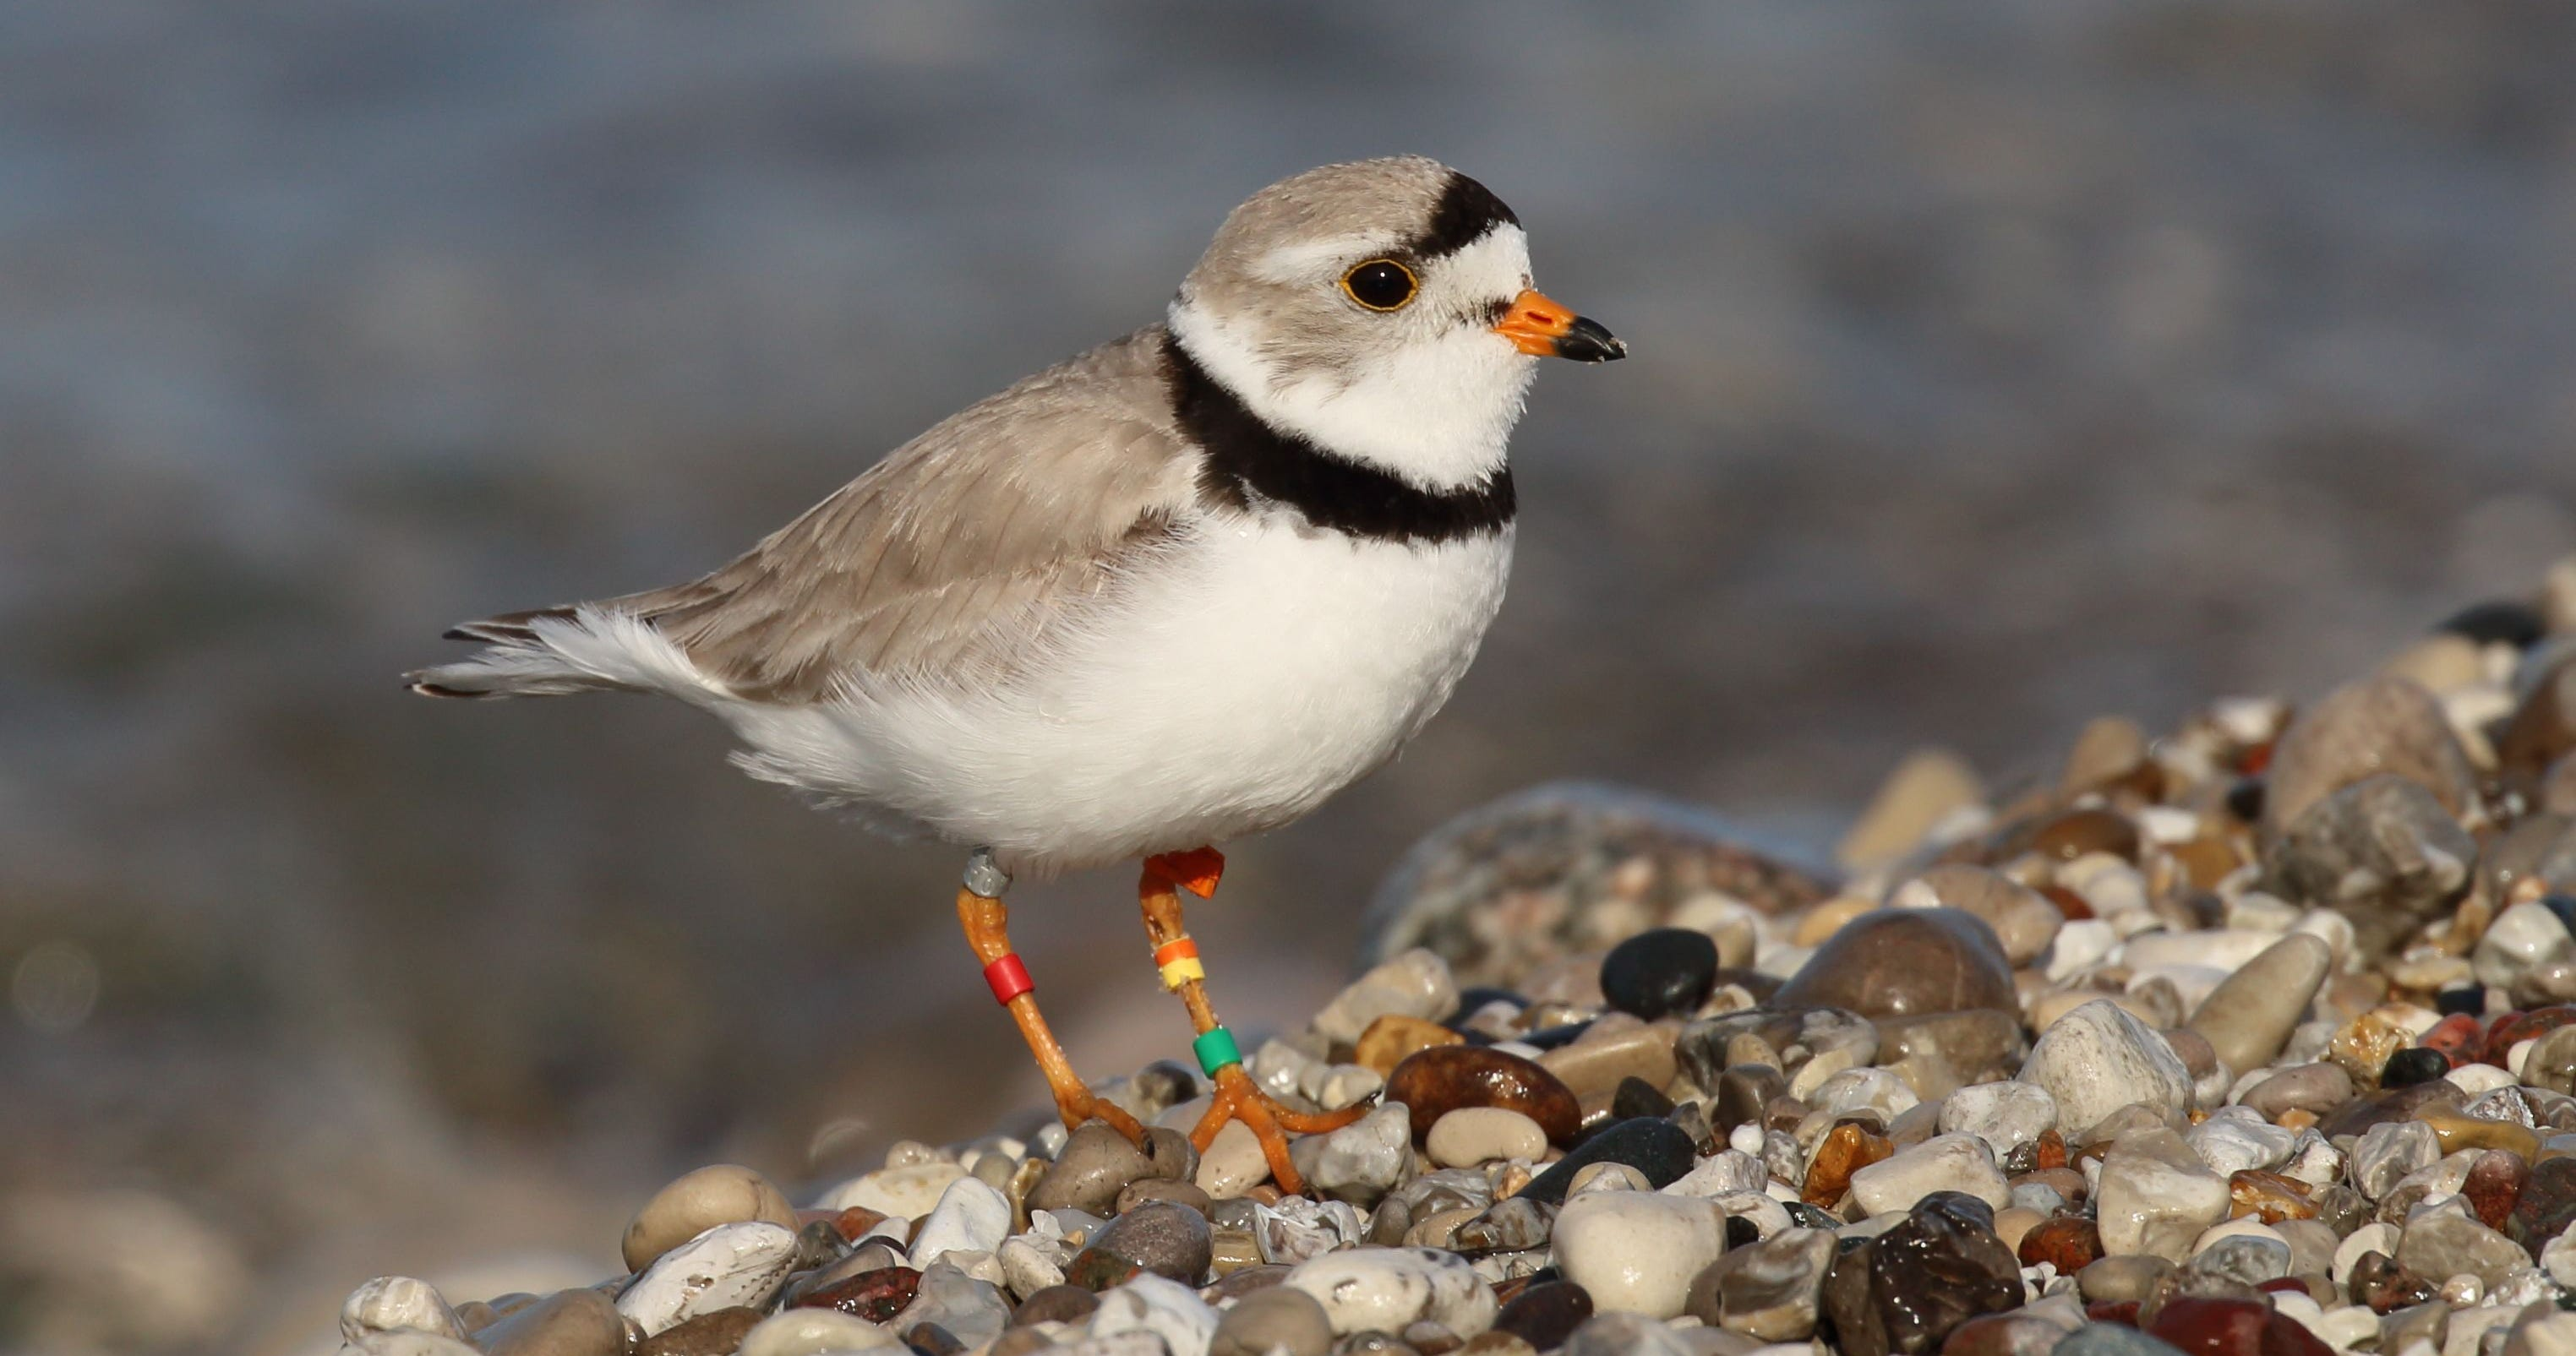 The piping plover builds its seasonal nests in the sands along Great Lakes shorelines